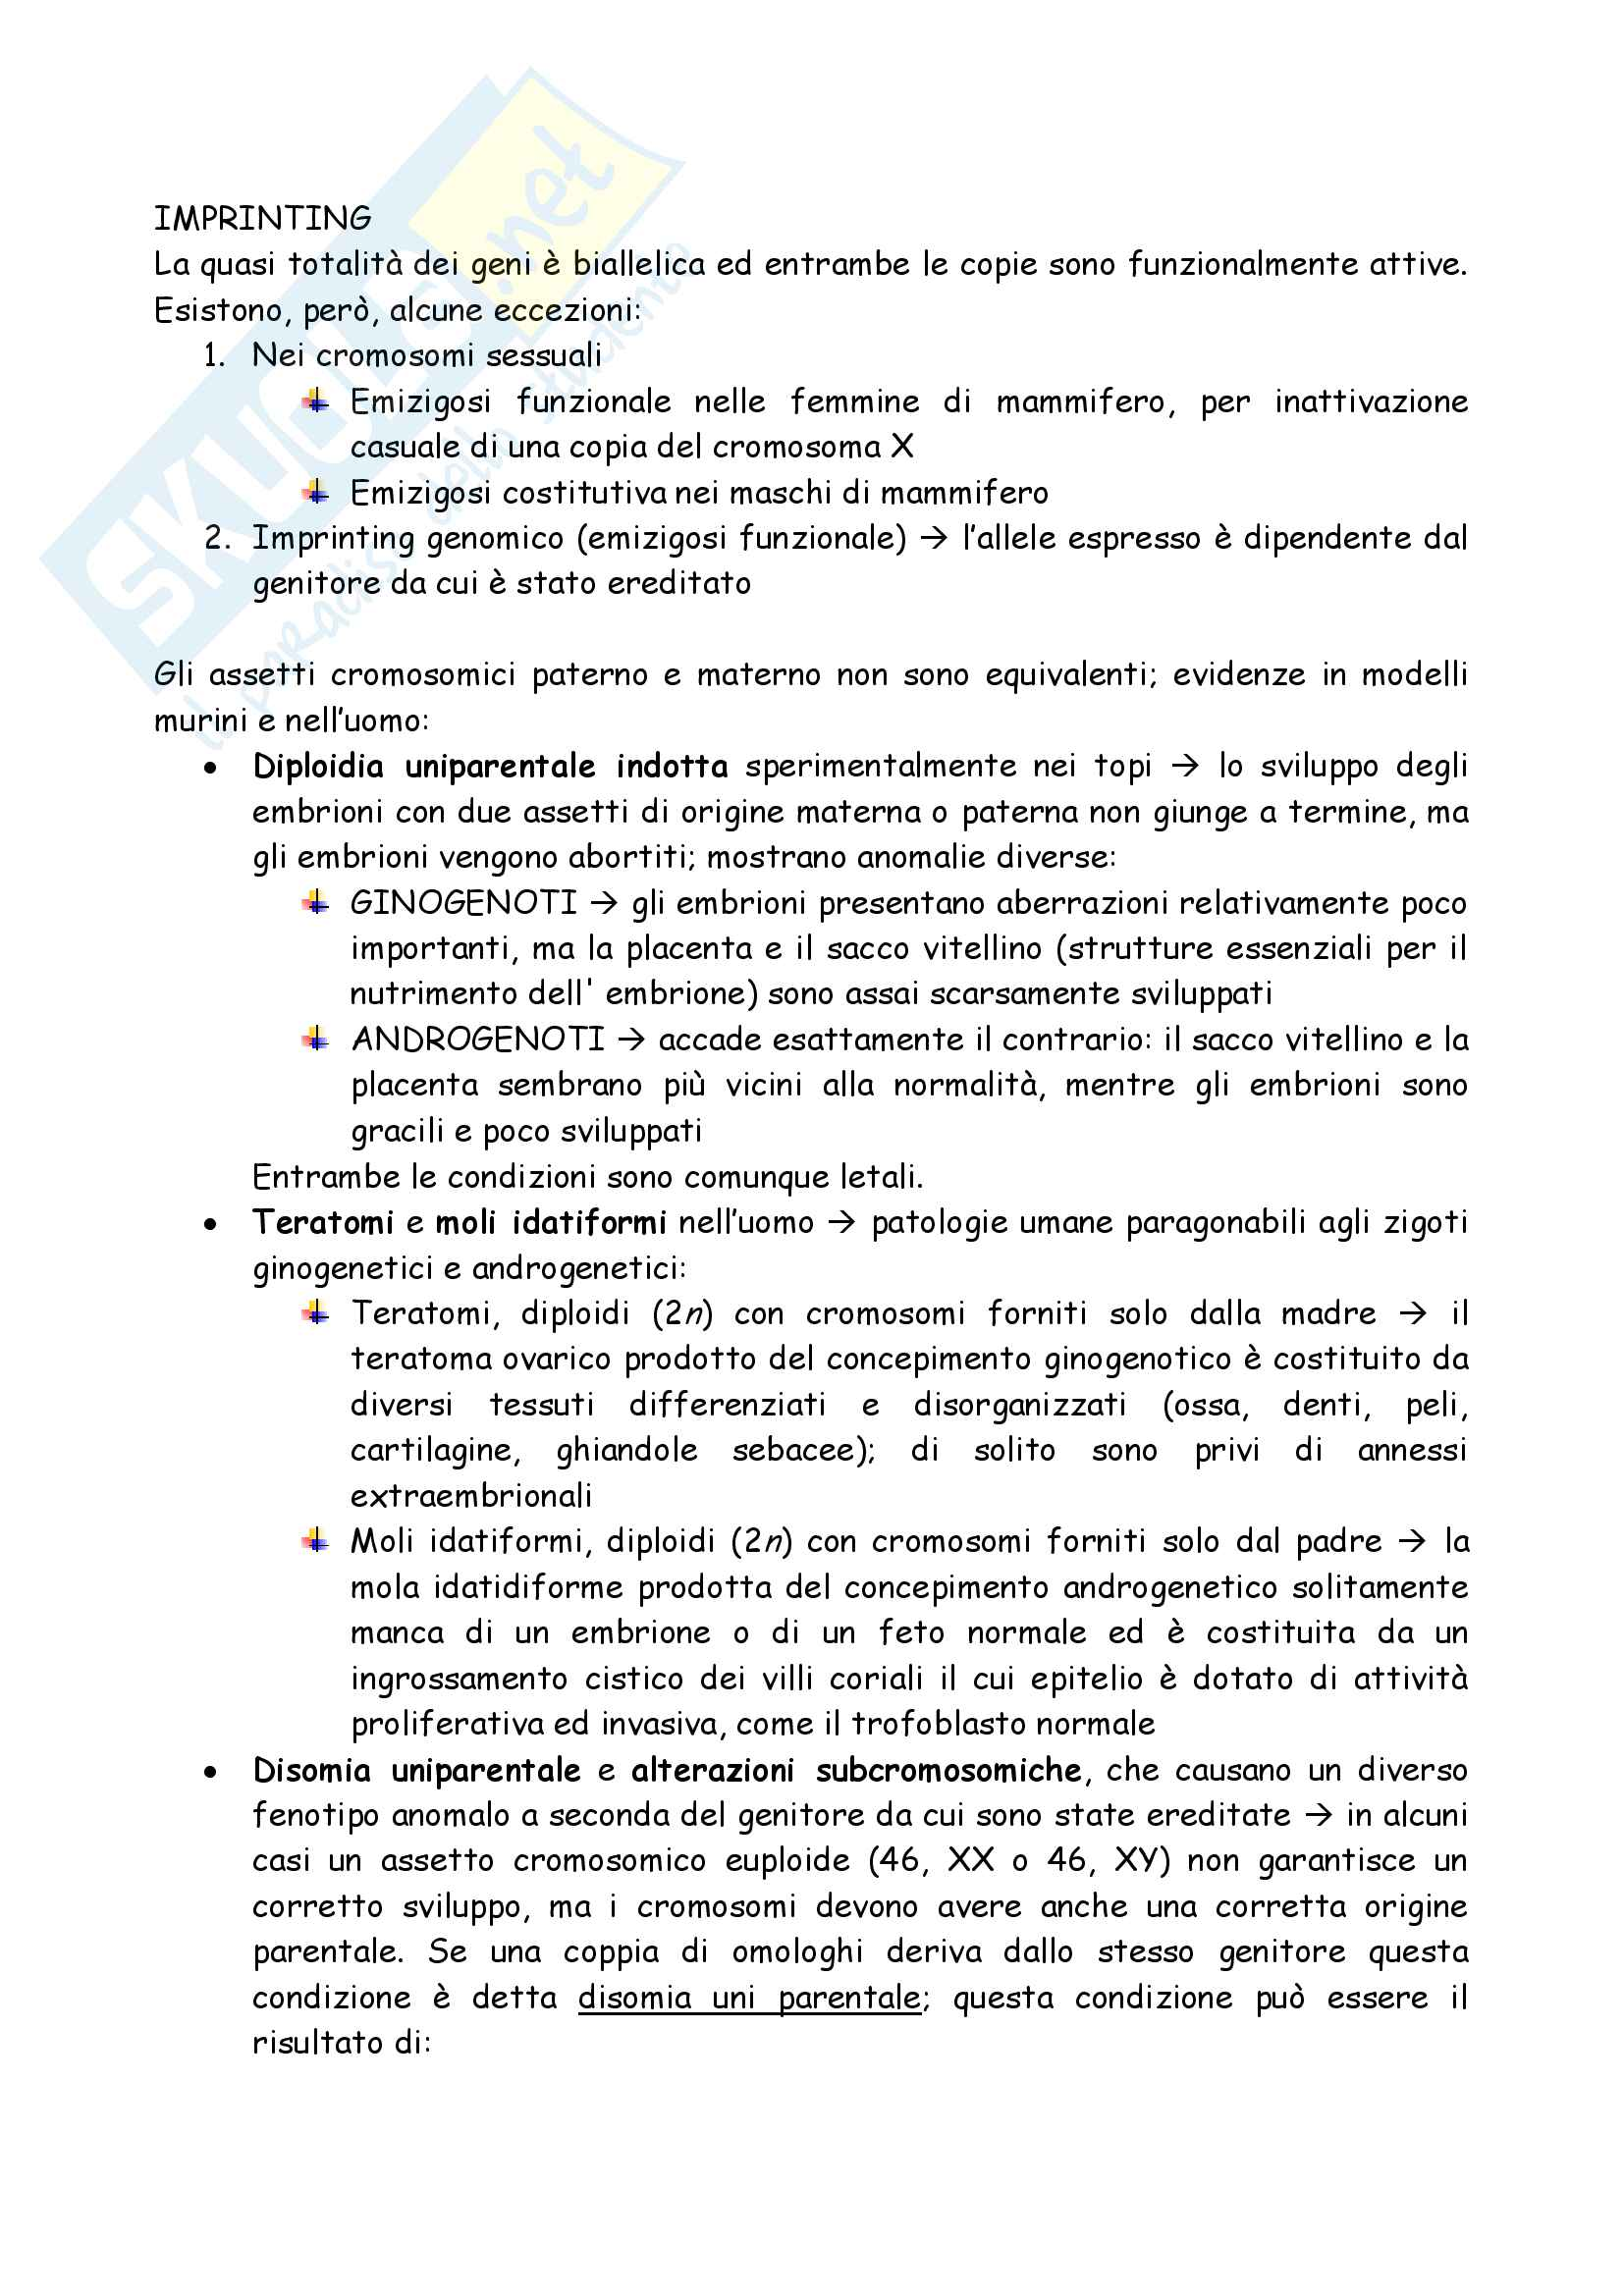 Totale Genetica Pag. 46